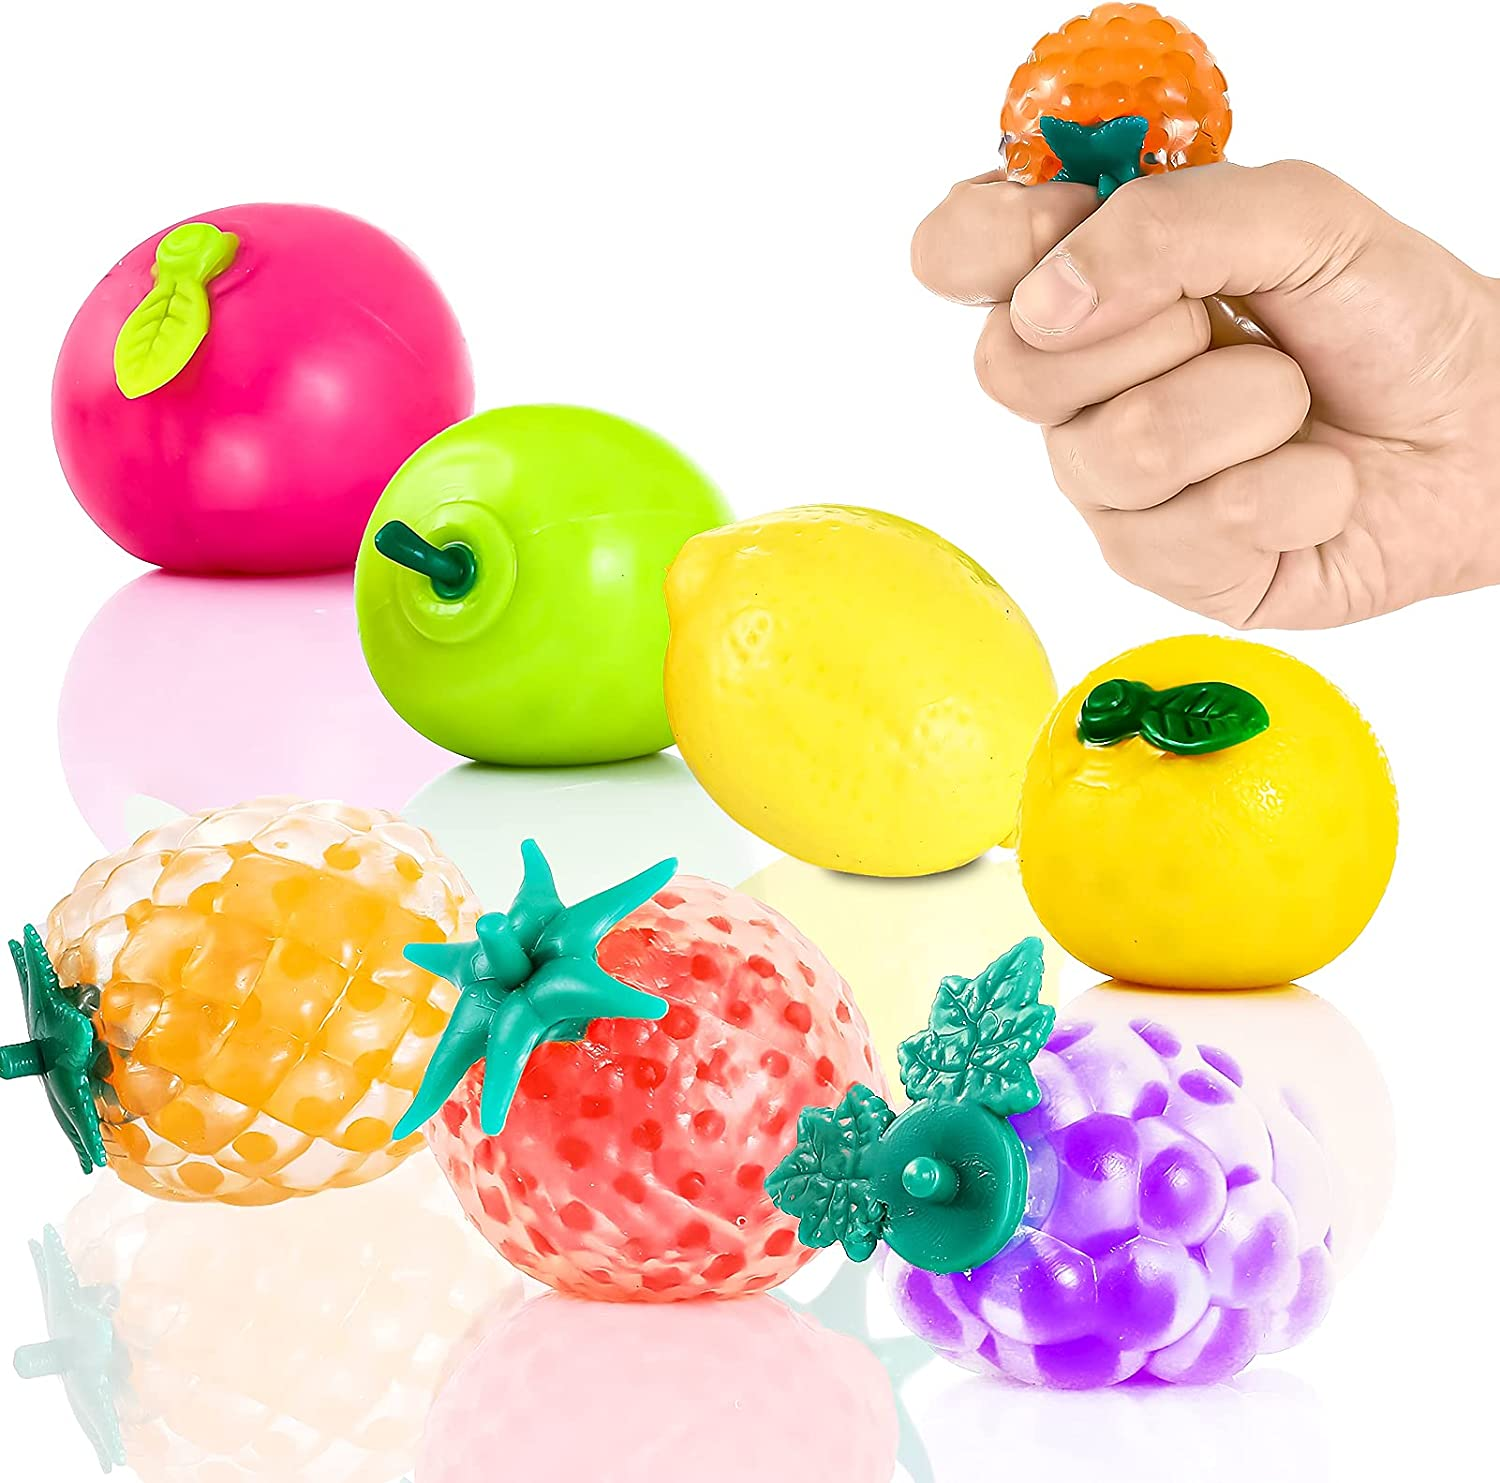 Squeeze Balls Fidget Toy, Water Beads Filled Sensory Stress Balls for Kids & Adults - 7PCs Cute Fruit Stress Anxiety Relief Ball for Autism, ADHD, OCD